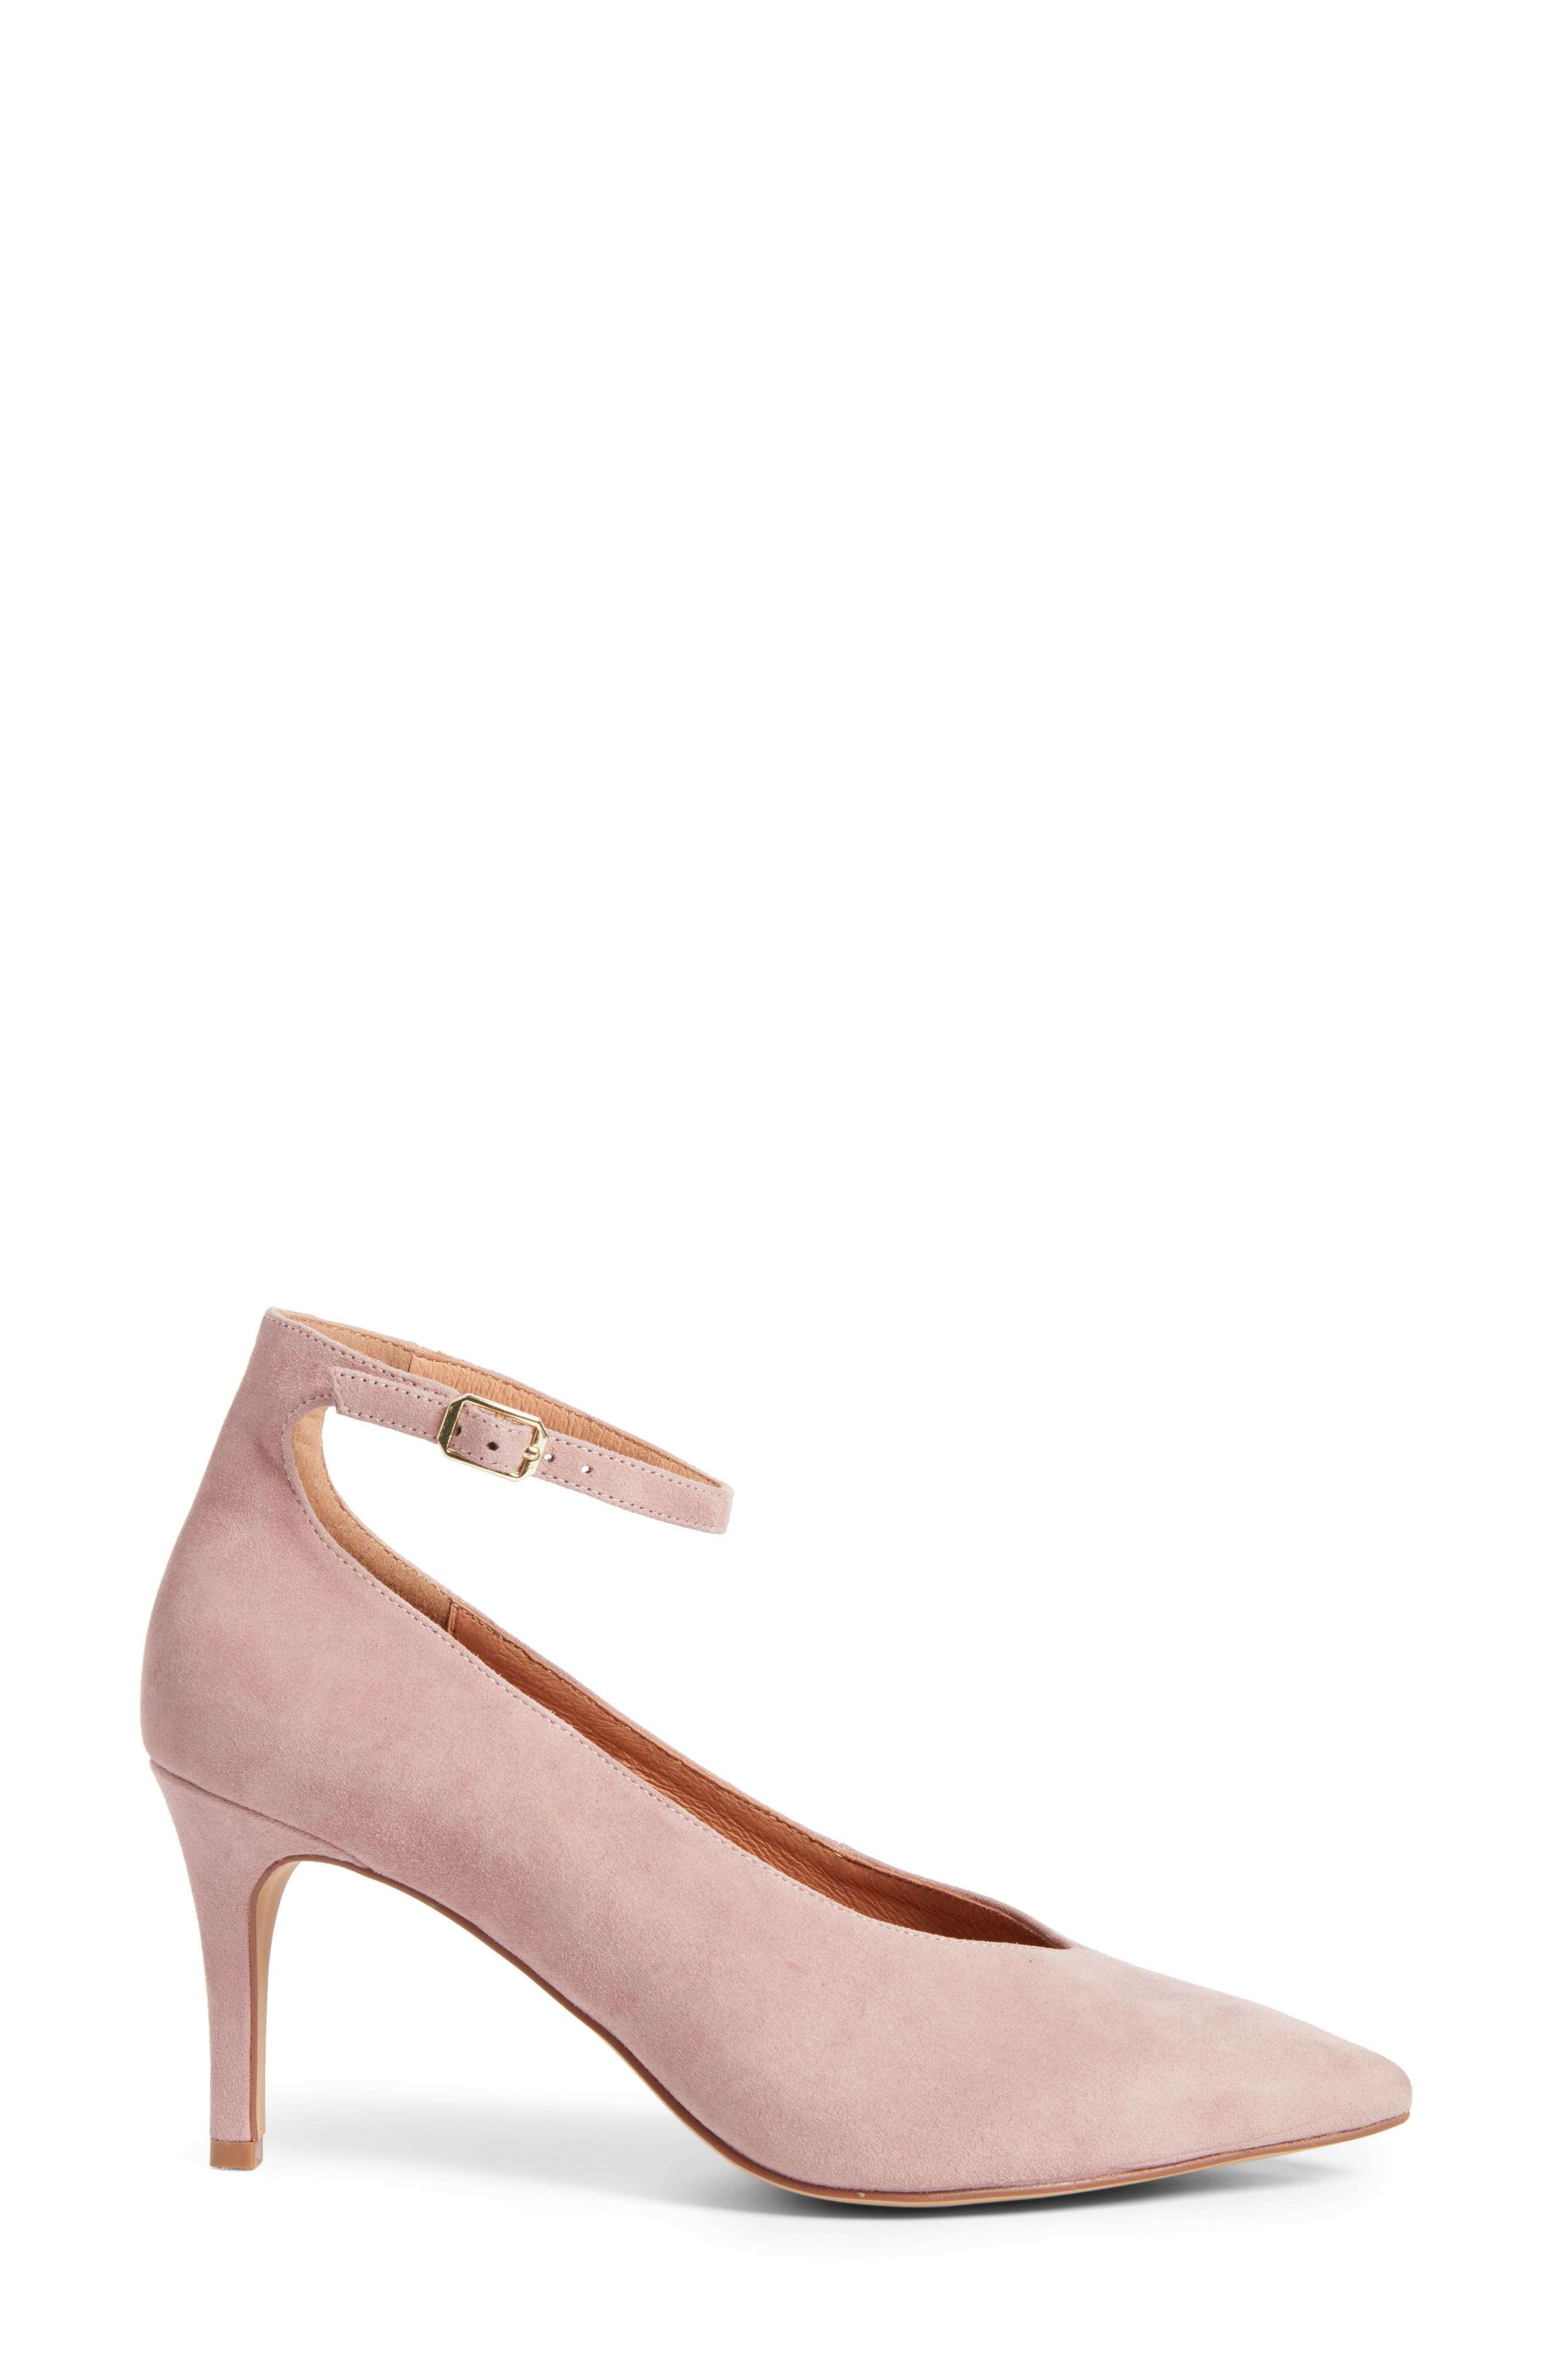 Azaela Ankle Strap Pump,                             Alternate thumbnail 4, color,                             Dark Pink Suede